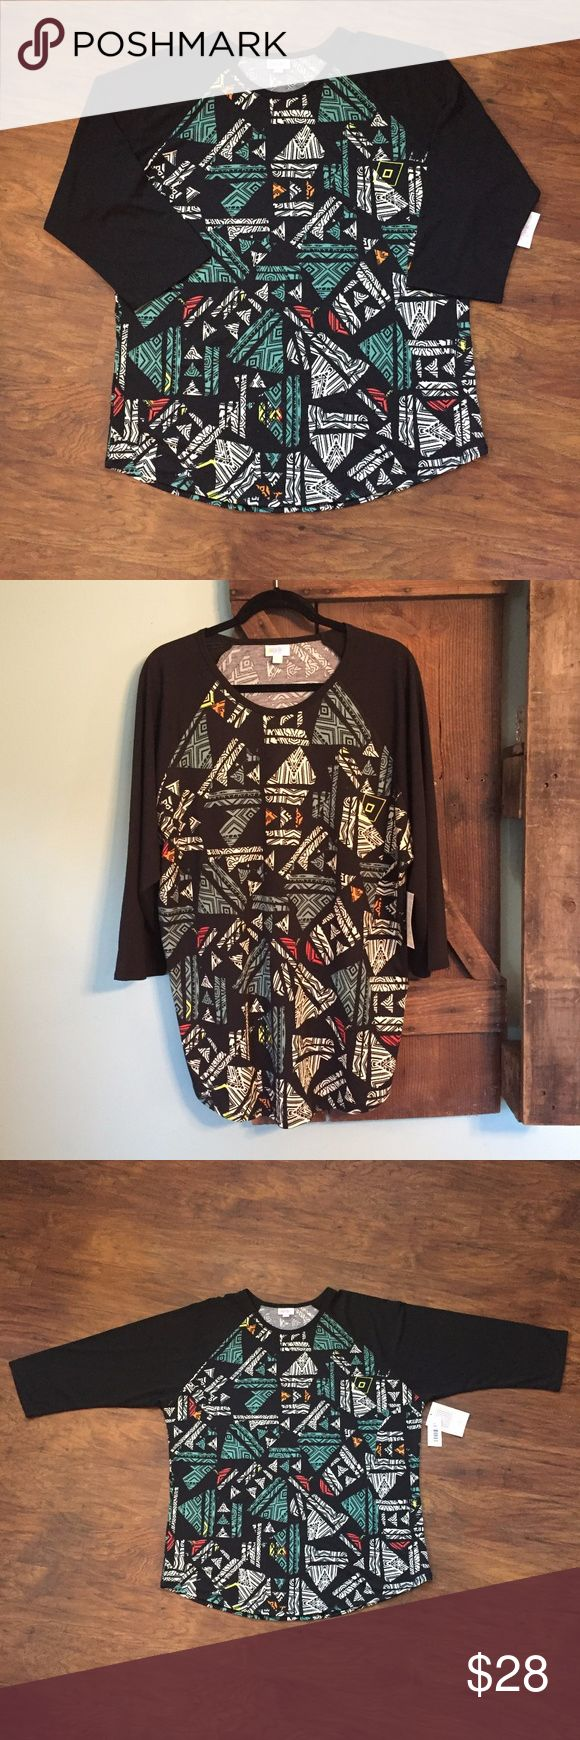 NWT LuLaRoe Randy Size 3XL Black White Aztec Top Aztec print Randy topwith colors of predominantly black, white, and teal, with some red, orange and yellow, black sleeves.  This is new with tags attached. LuLaRoe Tops Tees - Long Sleeve